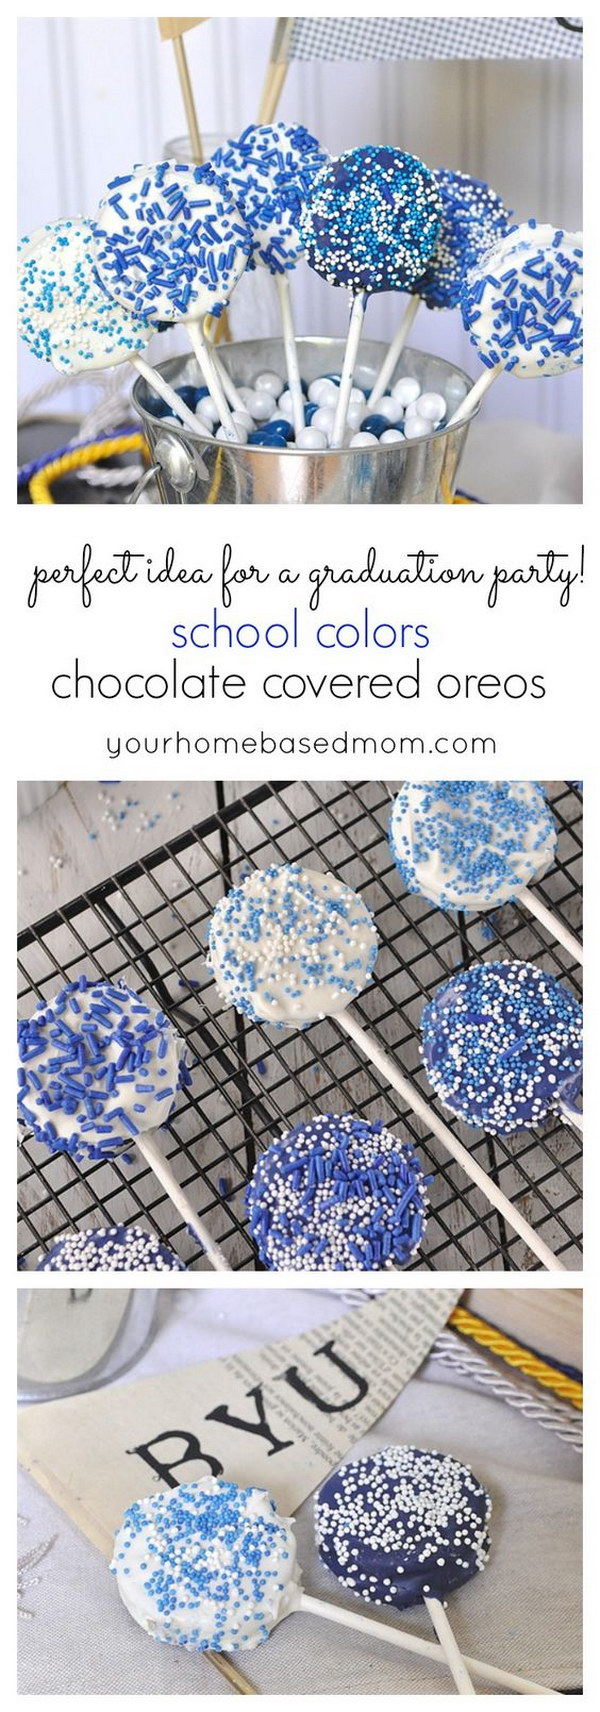 School Colors Chocolate Covered Oreos.